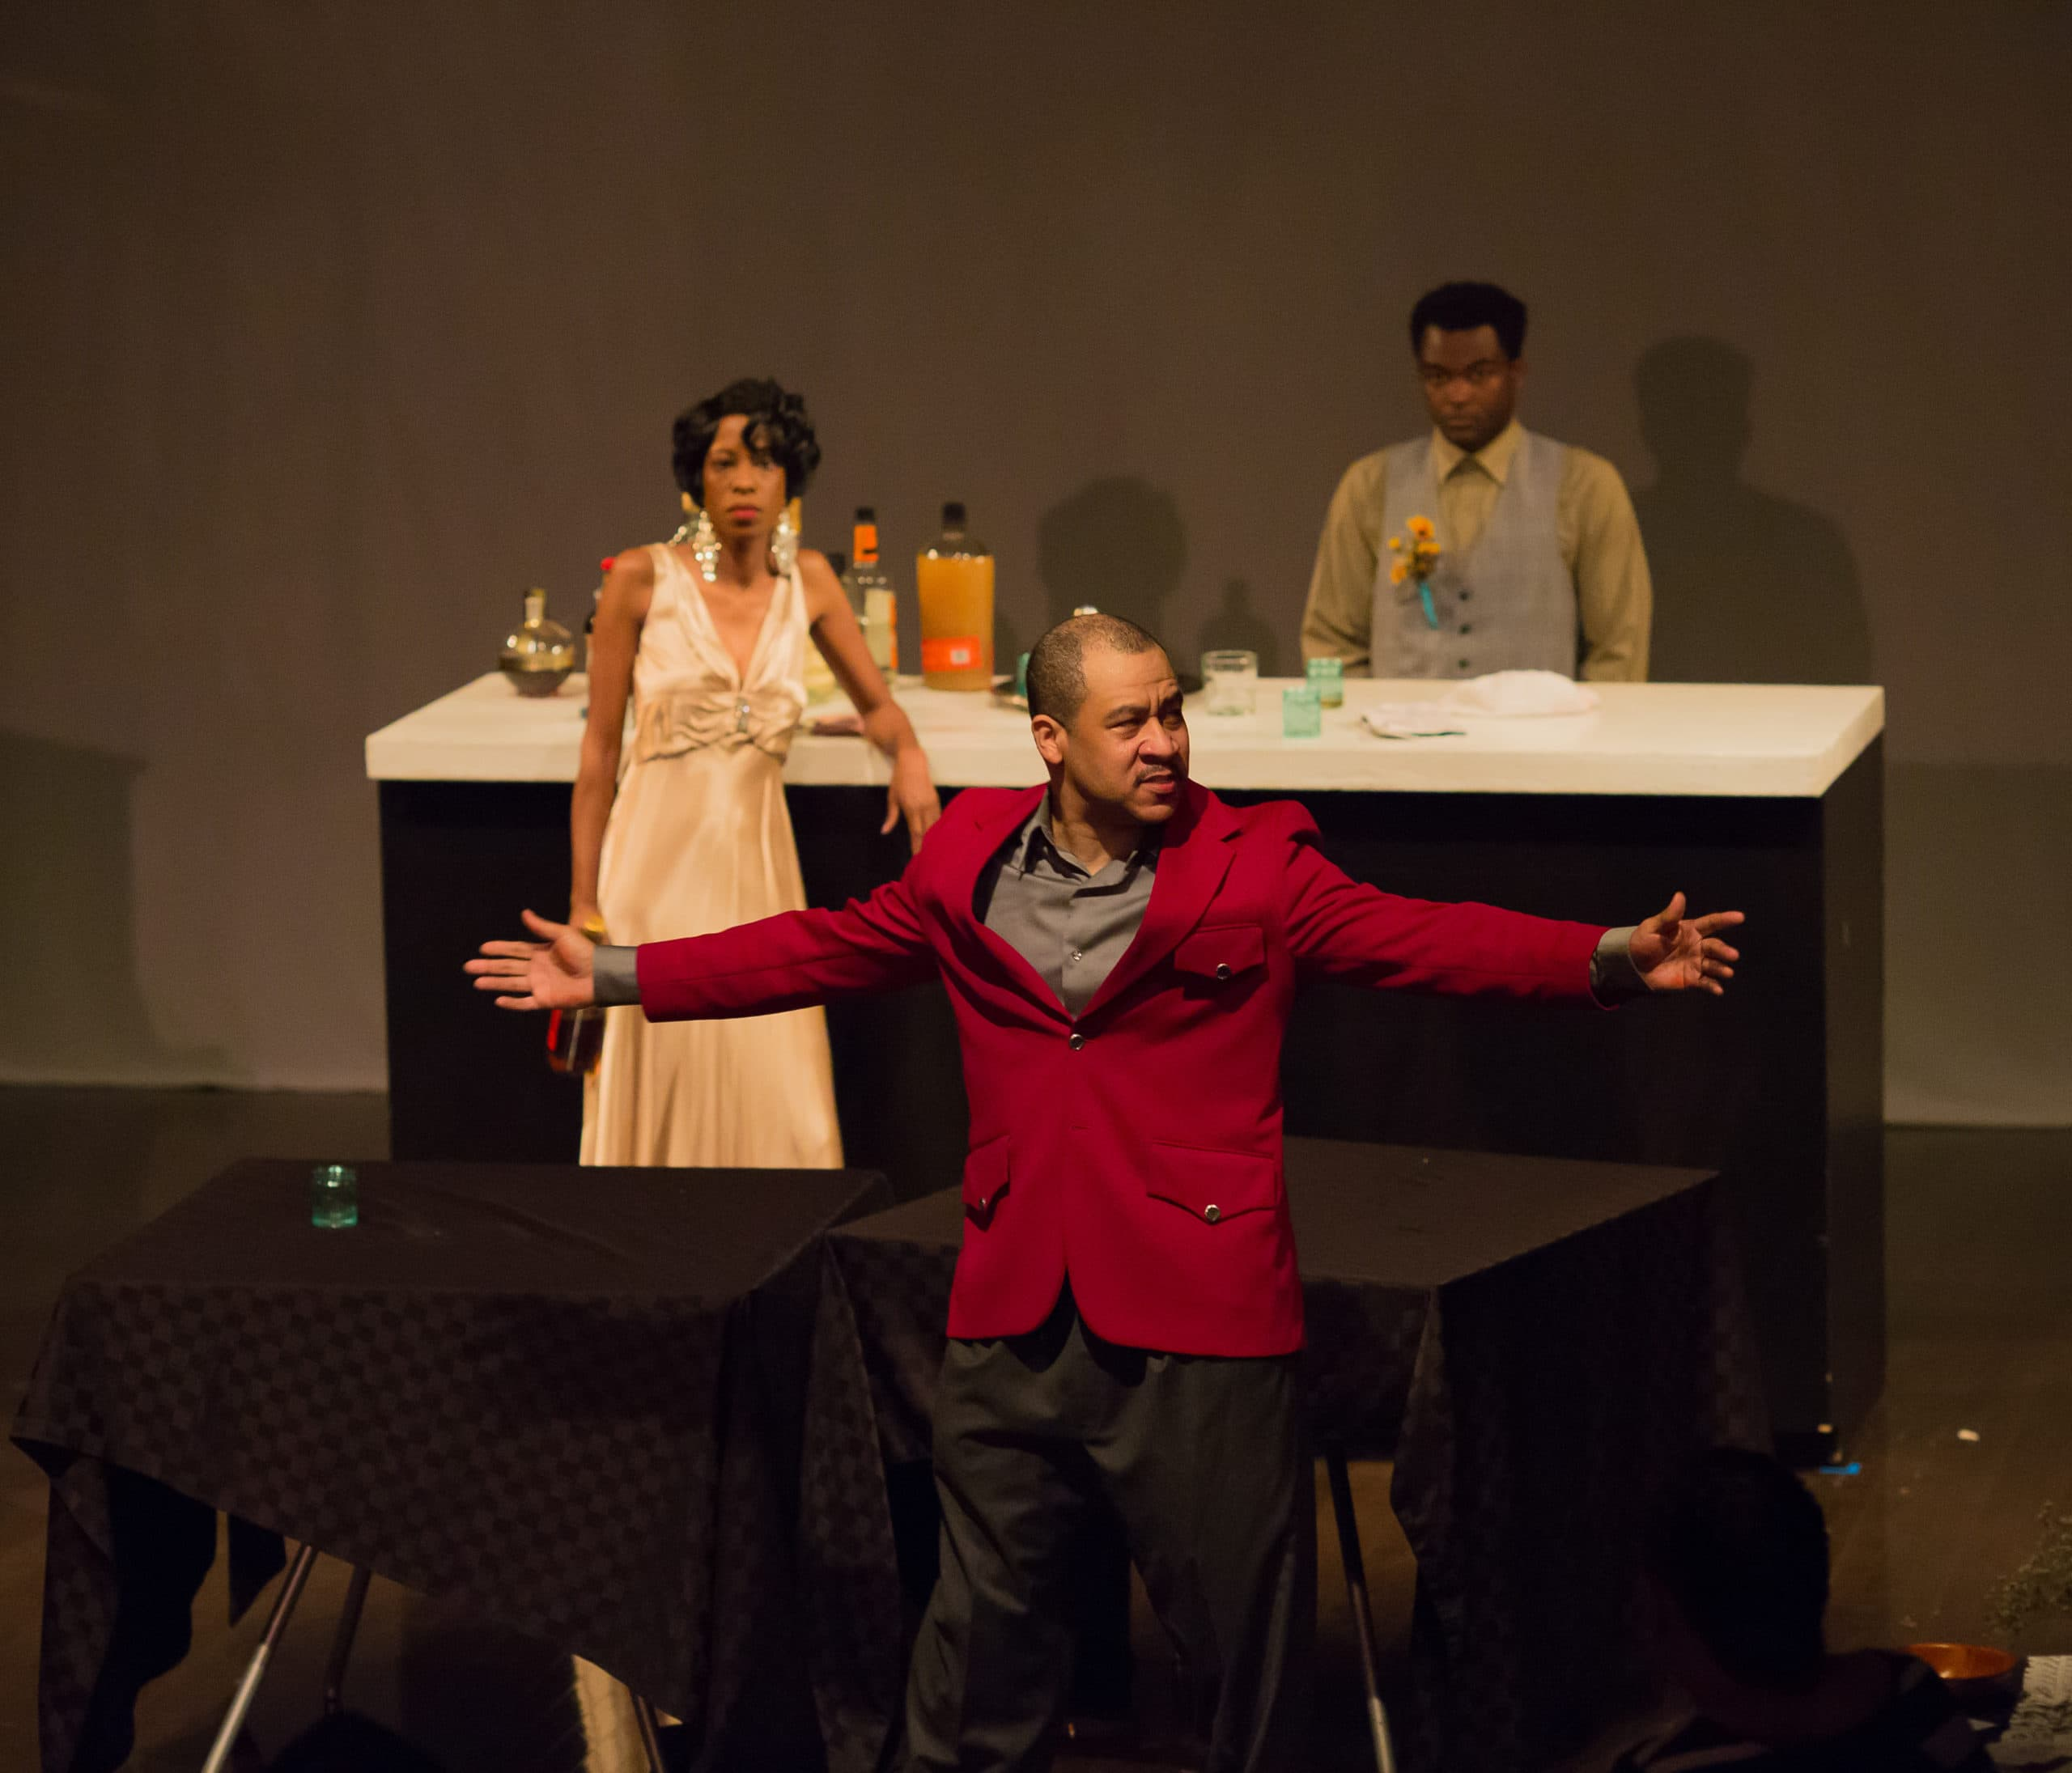 Eli El (foreground) as Sterling in 'Welcome to Sis's' by Ally Theatre Company. Photo by Angelisa Gillyard.